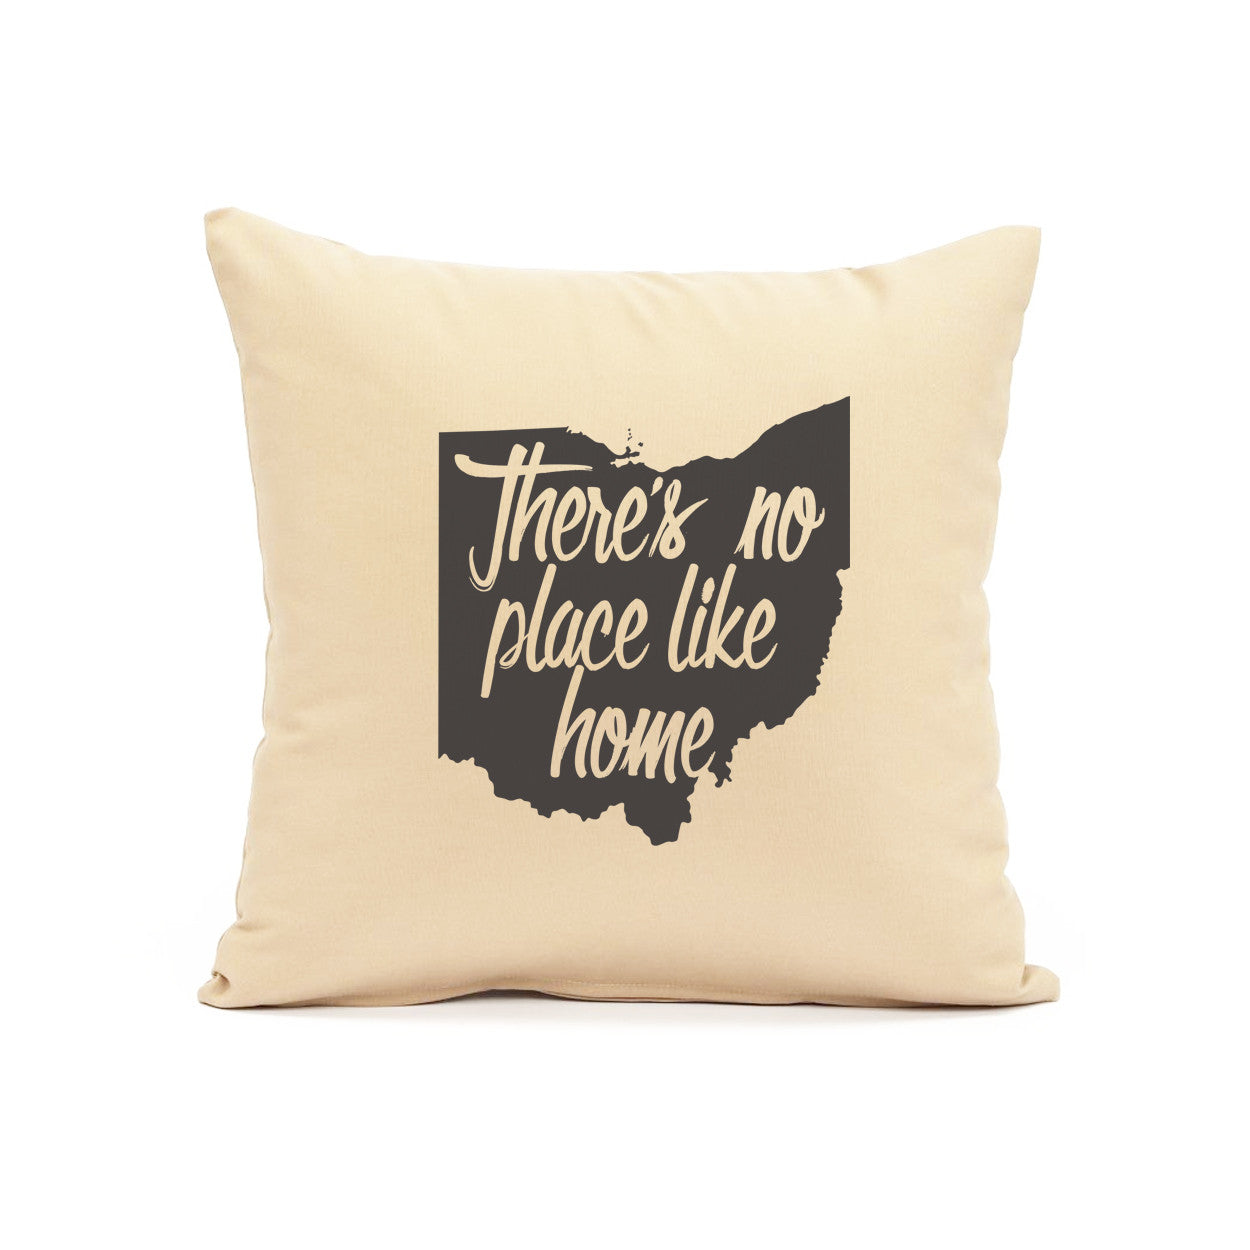 Ohio Theres No Place Like Home Throw Pillow - Clothe Ohio - Soft Ohio Shirts